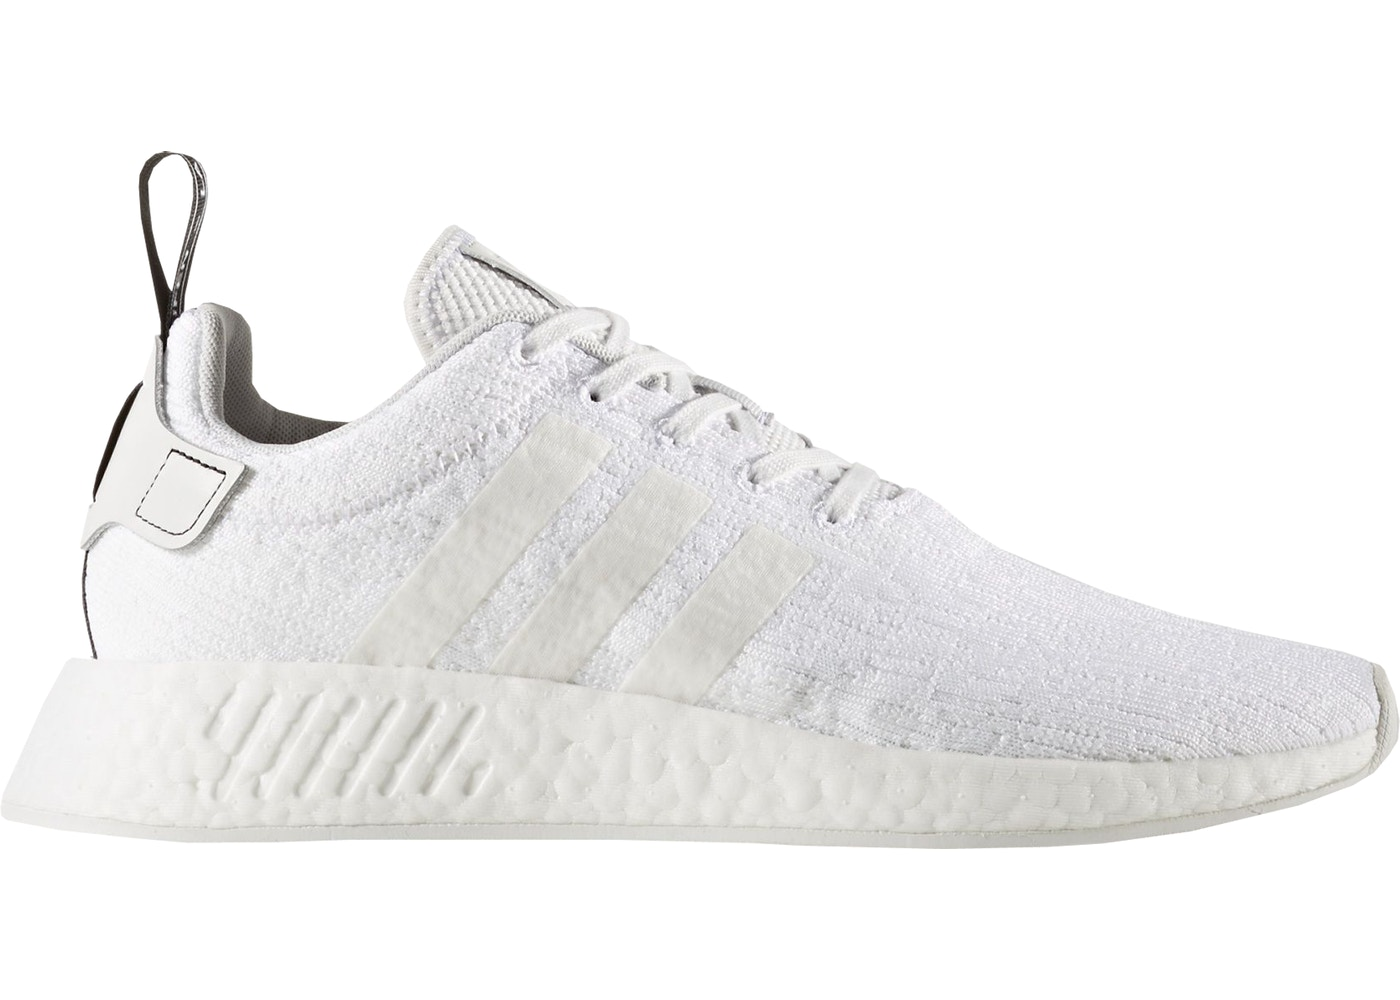 huge selection of b2247 05991 Buy adidas NMD Size 7.5 Shoes & Deadstock Sneakers